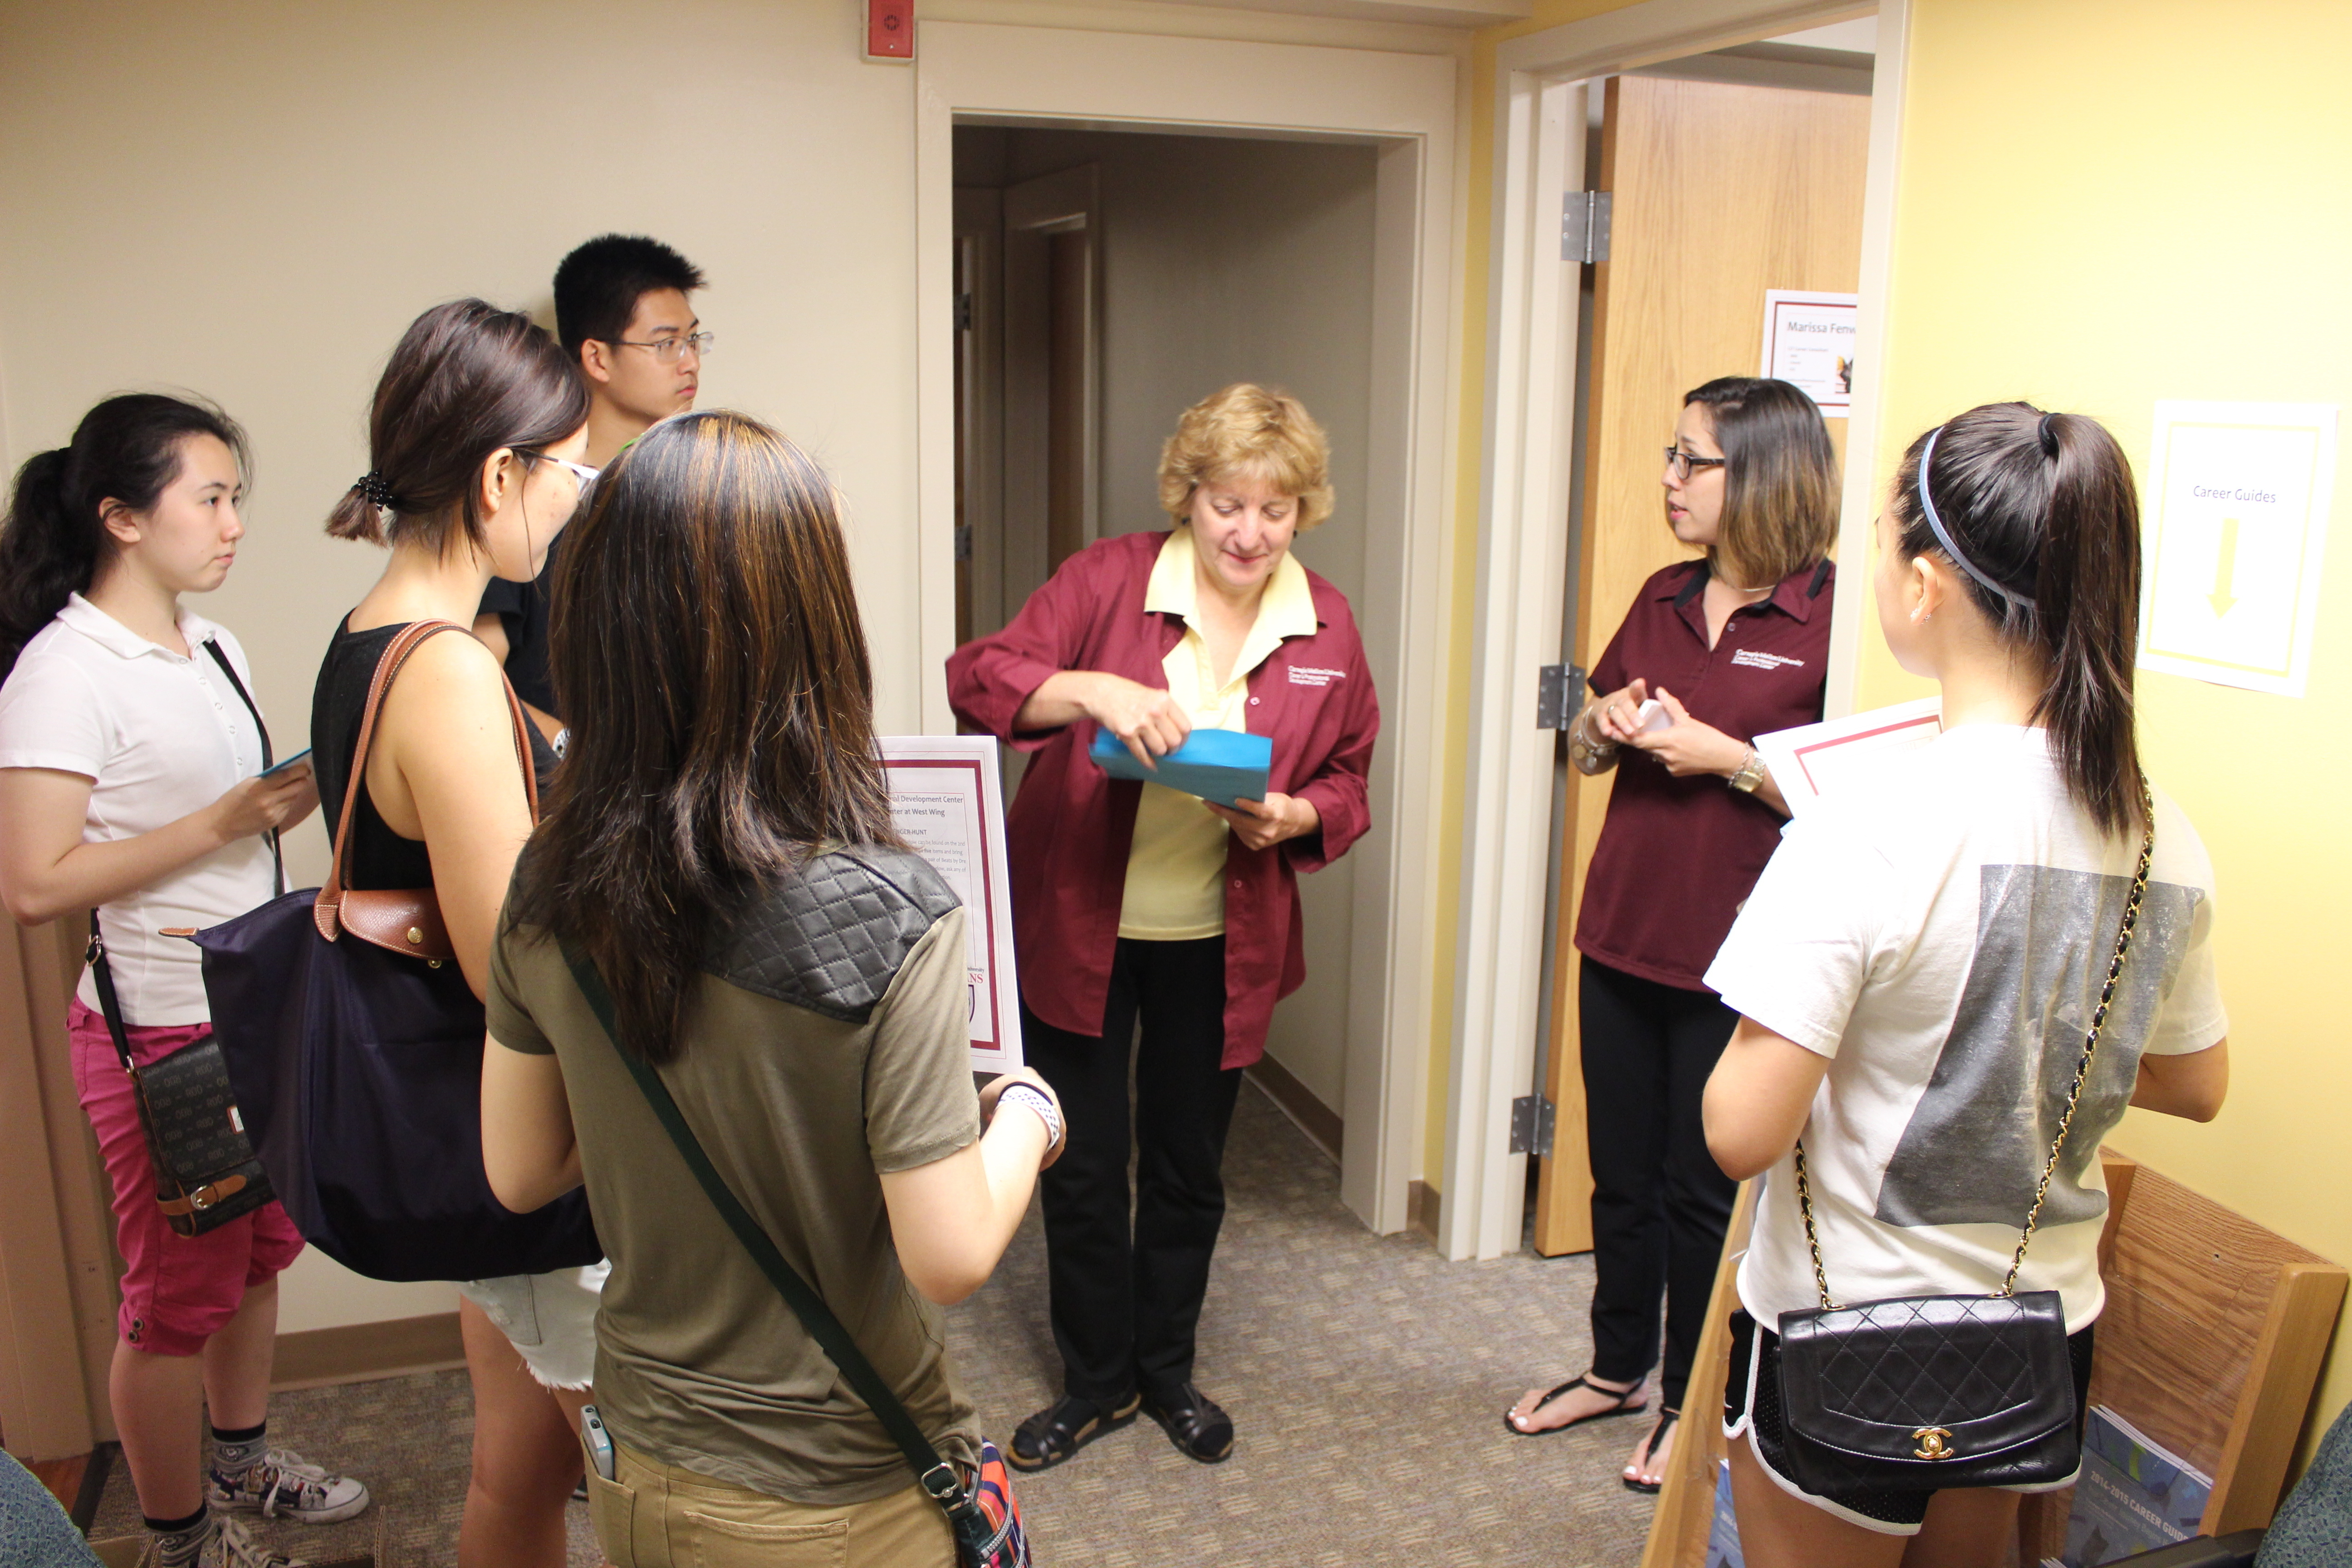 Elaine Stolick, a Career and Professional Development Center assistant director and career consultant for the College of Fine Arts and industry specialist in arts and entertainment, shows students around the CPDC's new West Wing space during a first-year open house on Aug. 22. (credit: Courtesy of Kevin O'Connell of the Career and Professional Development Center)